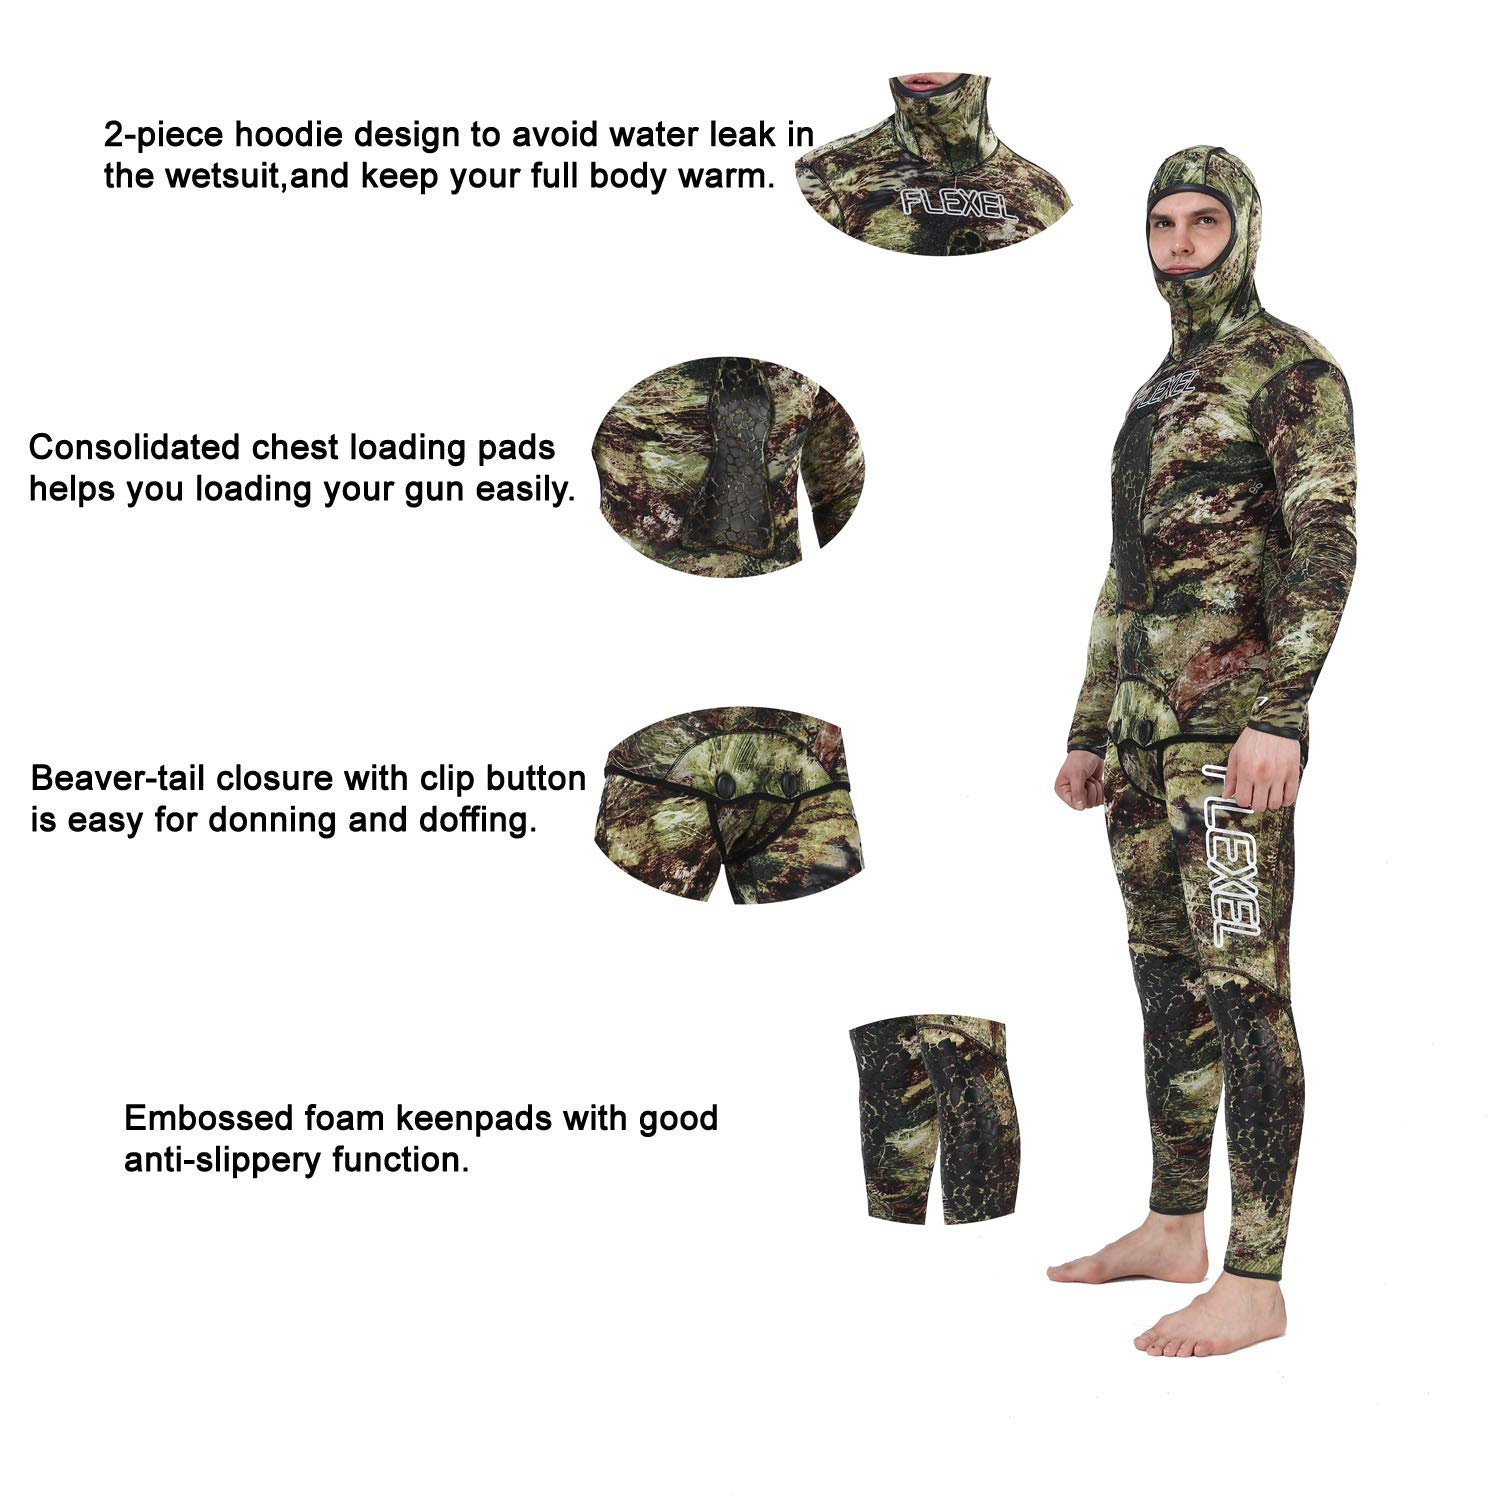 Flexel Camo Spearfishing Wetsuits Men Premium Camouflage Neoprene 2-Pieces Hoodie Freediving Fullsuit for Scuba Diving Snorkeling Swimming (7mm Grass camo, Large) by Flexel (Image #3)